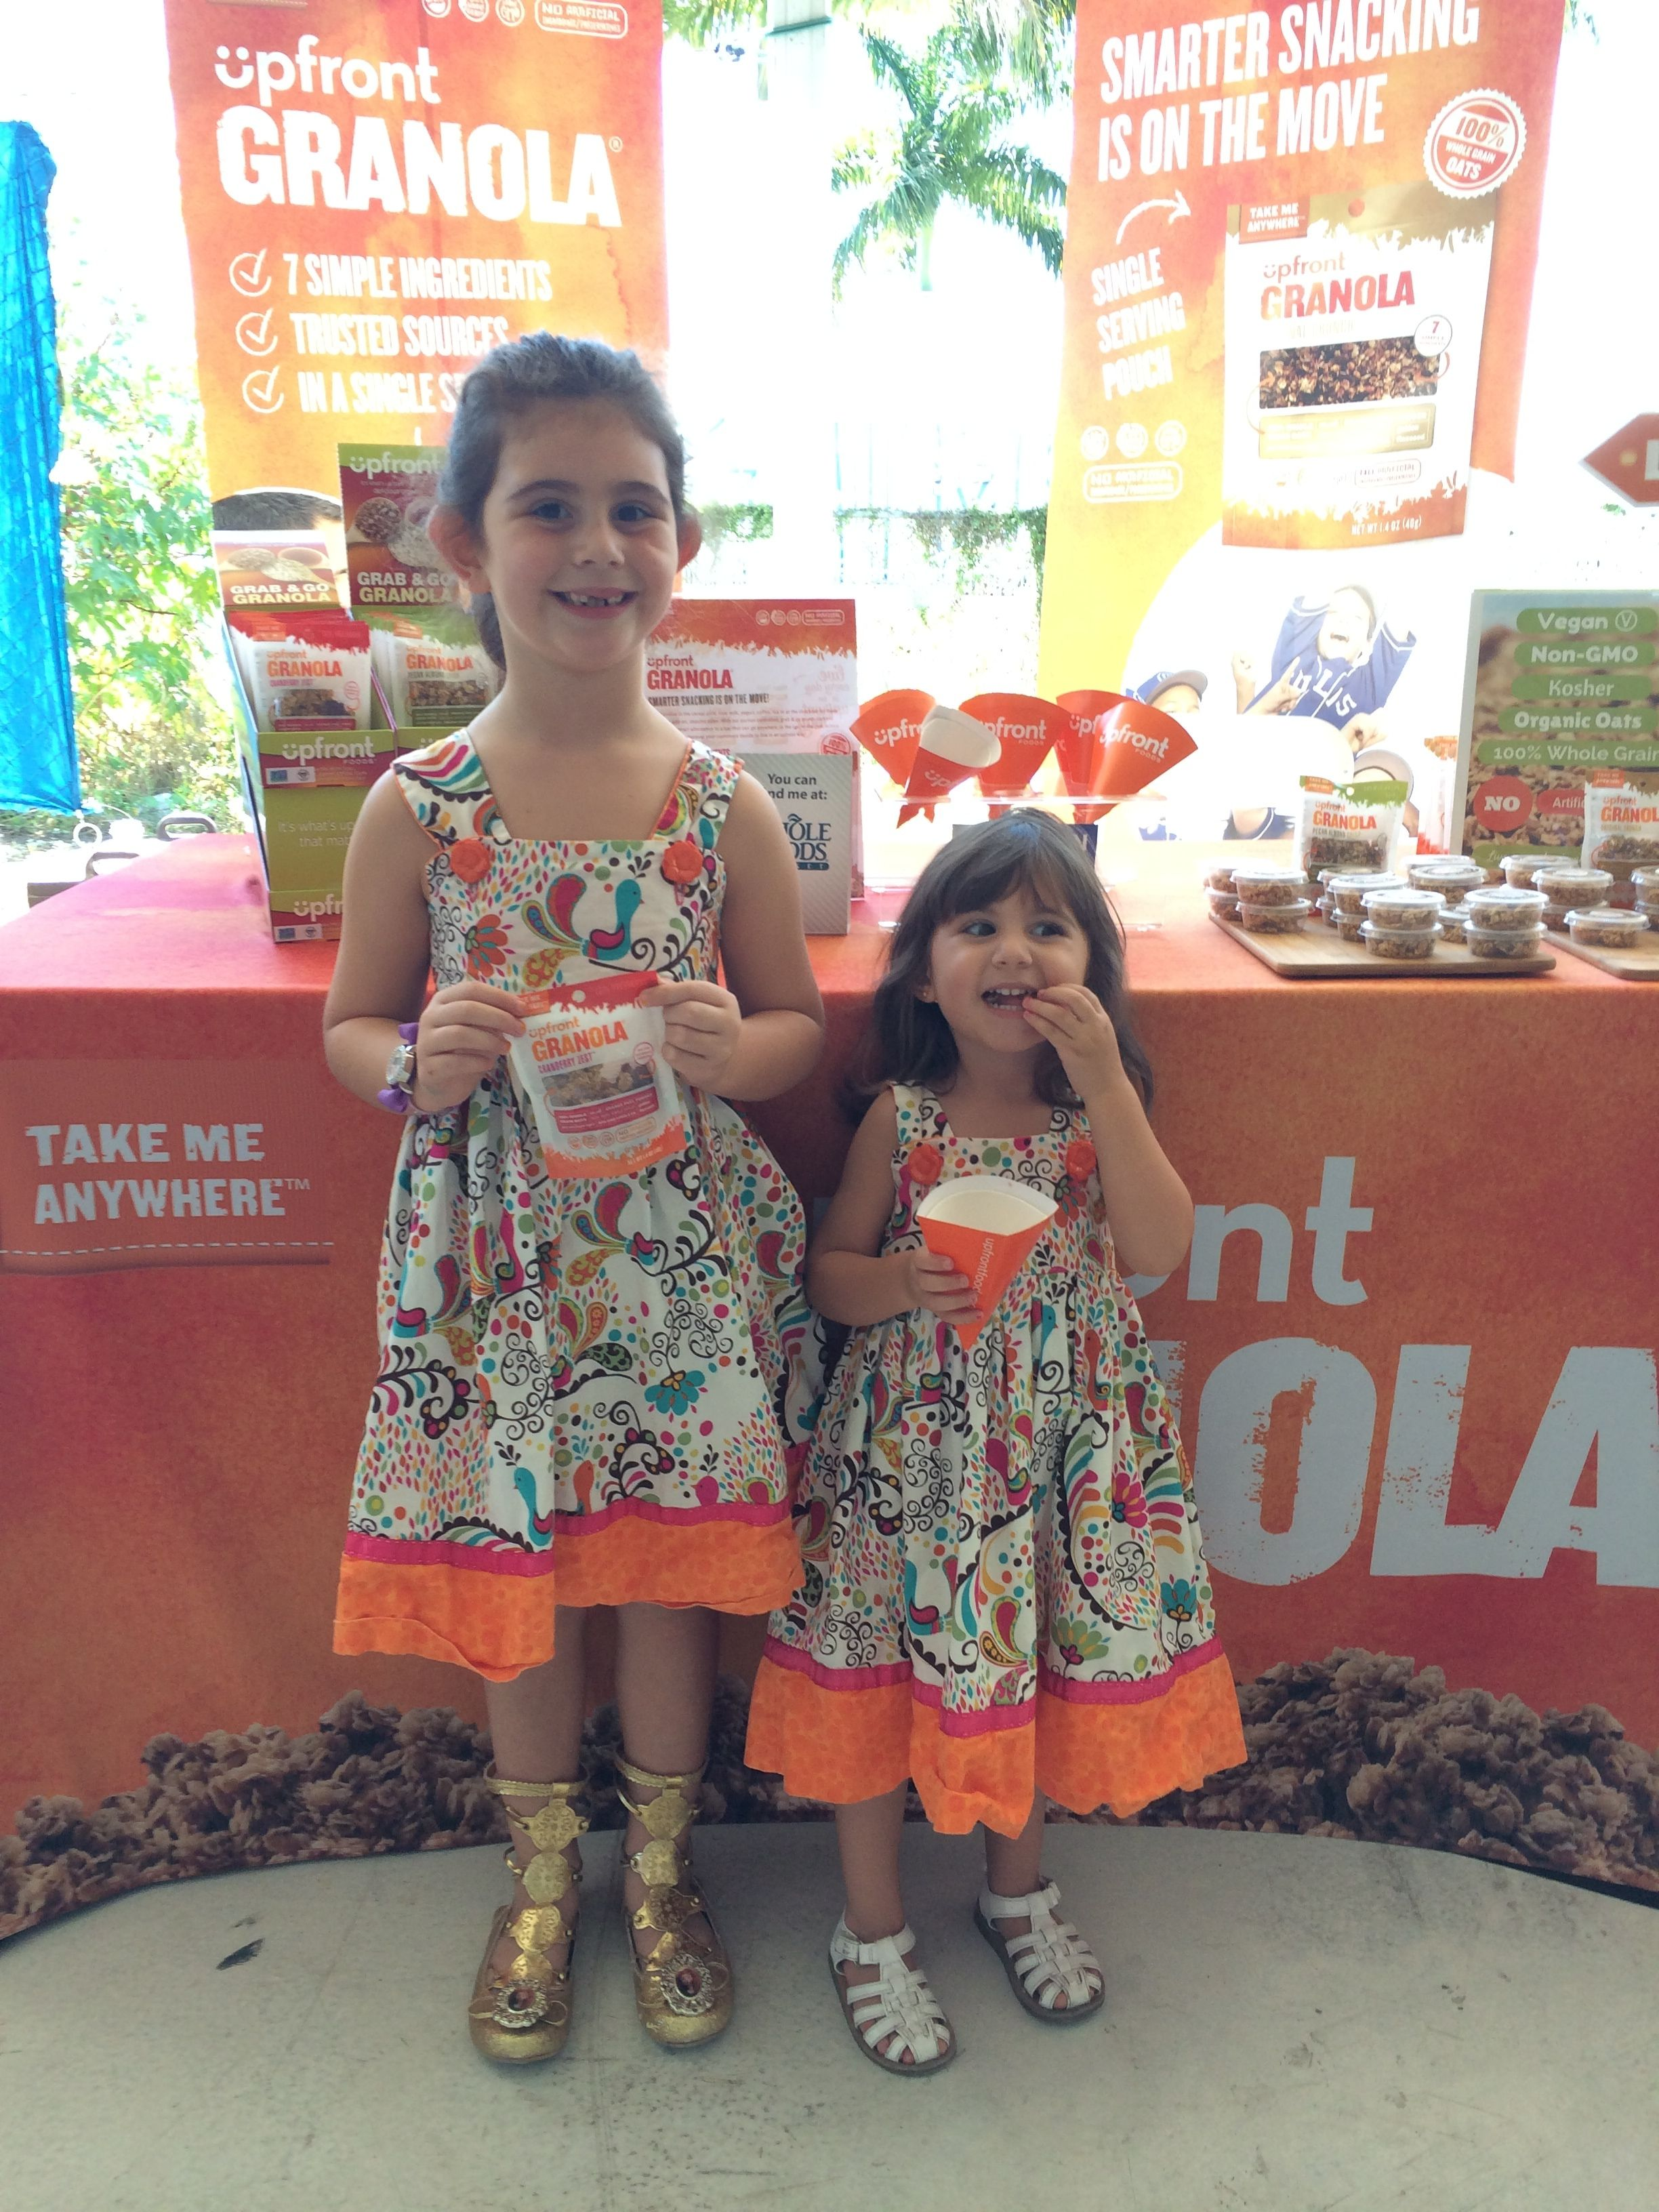 Kids love Upfront Granola at the SEED Food and Wine Festival, Miami, Vegan, Plant-Based, Healthy Snack for Kids